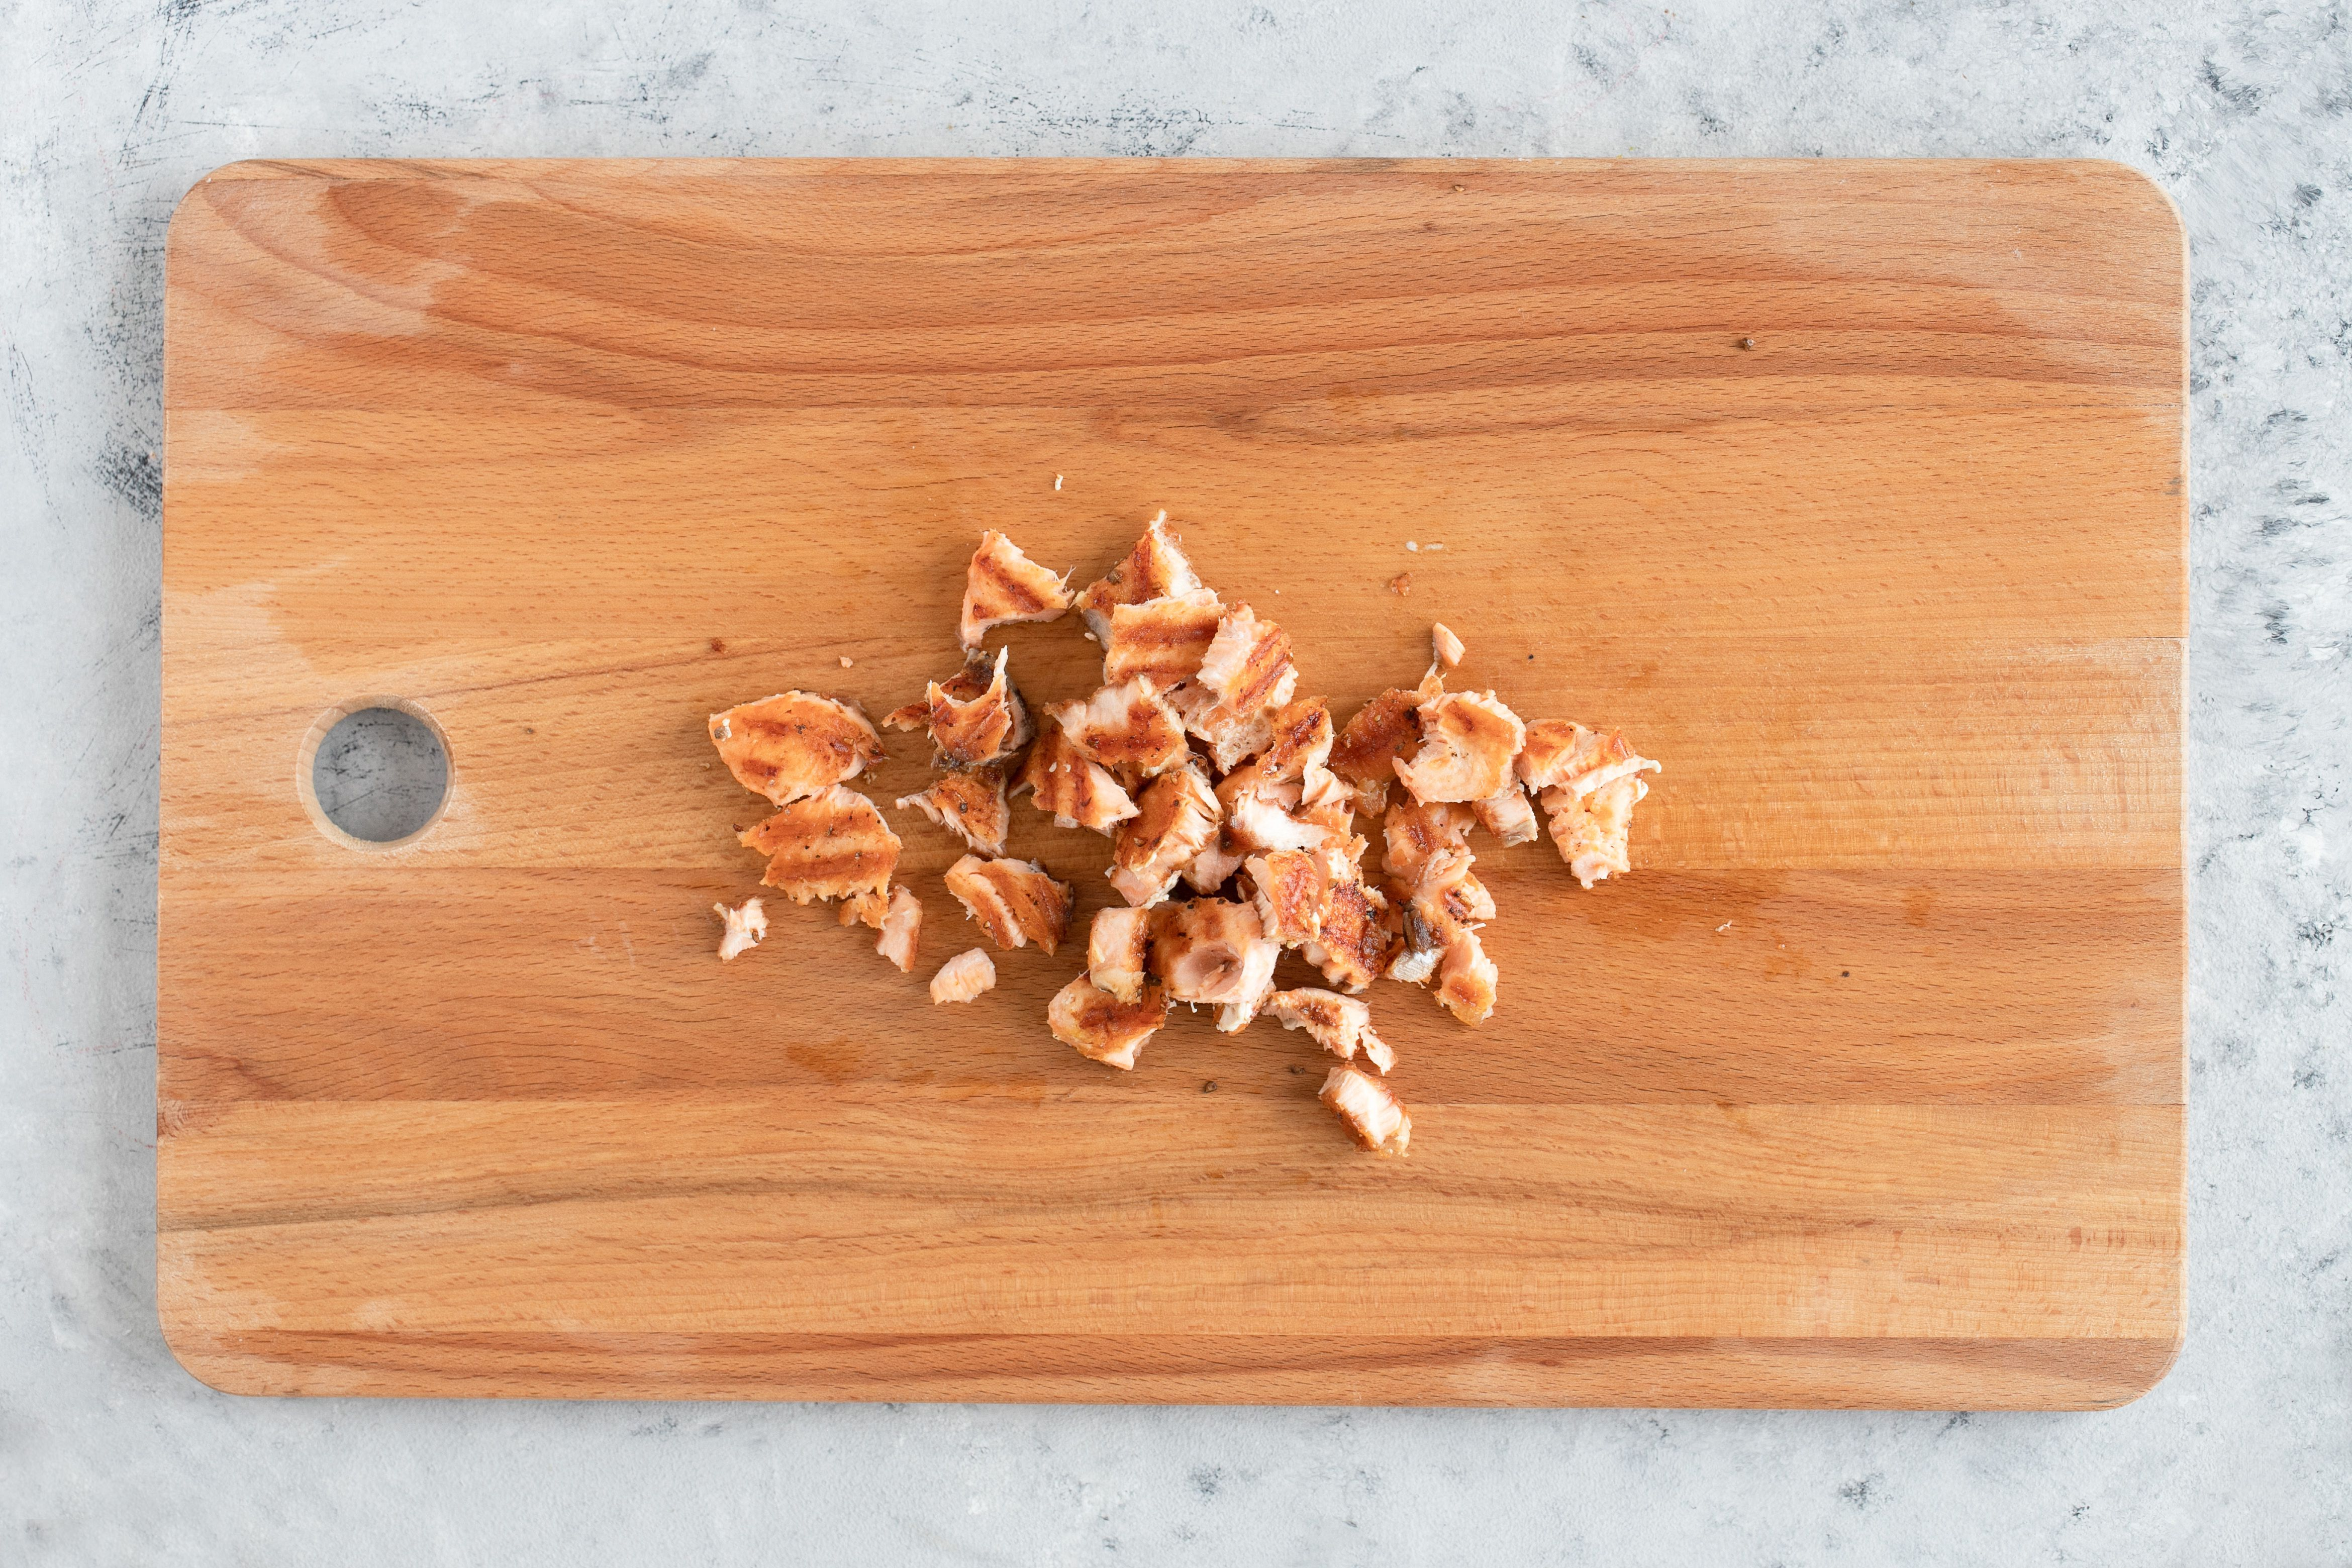 Salmon broken into large pieces on cutting board